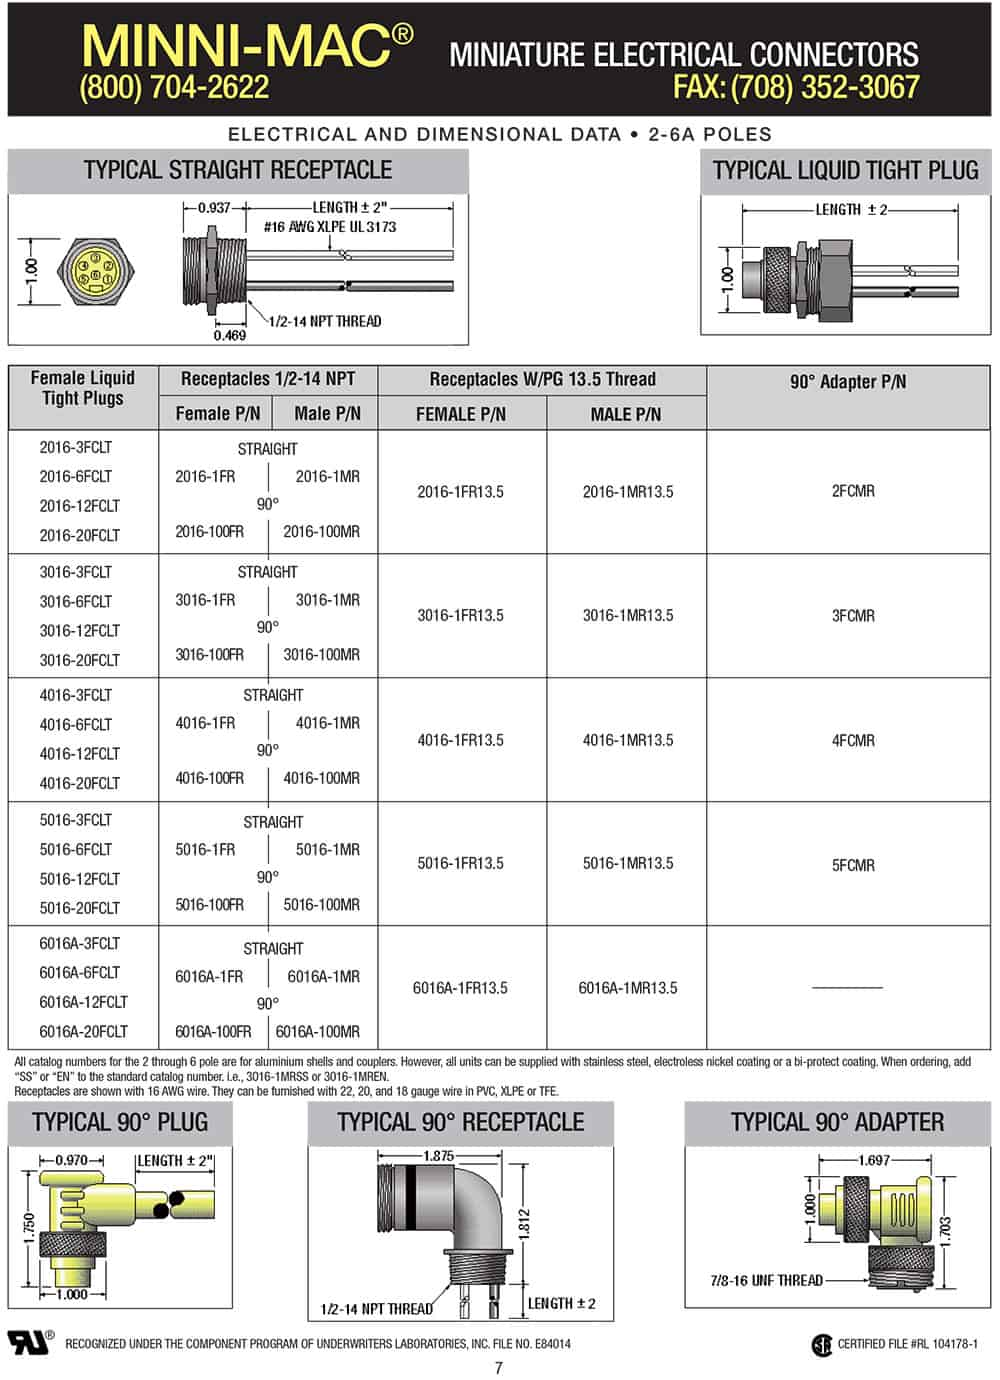 Minni Mac 2-6A pole connectors spec sheet